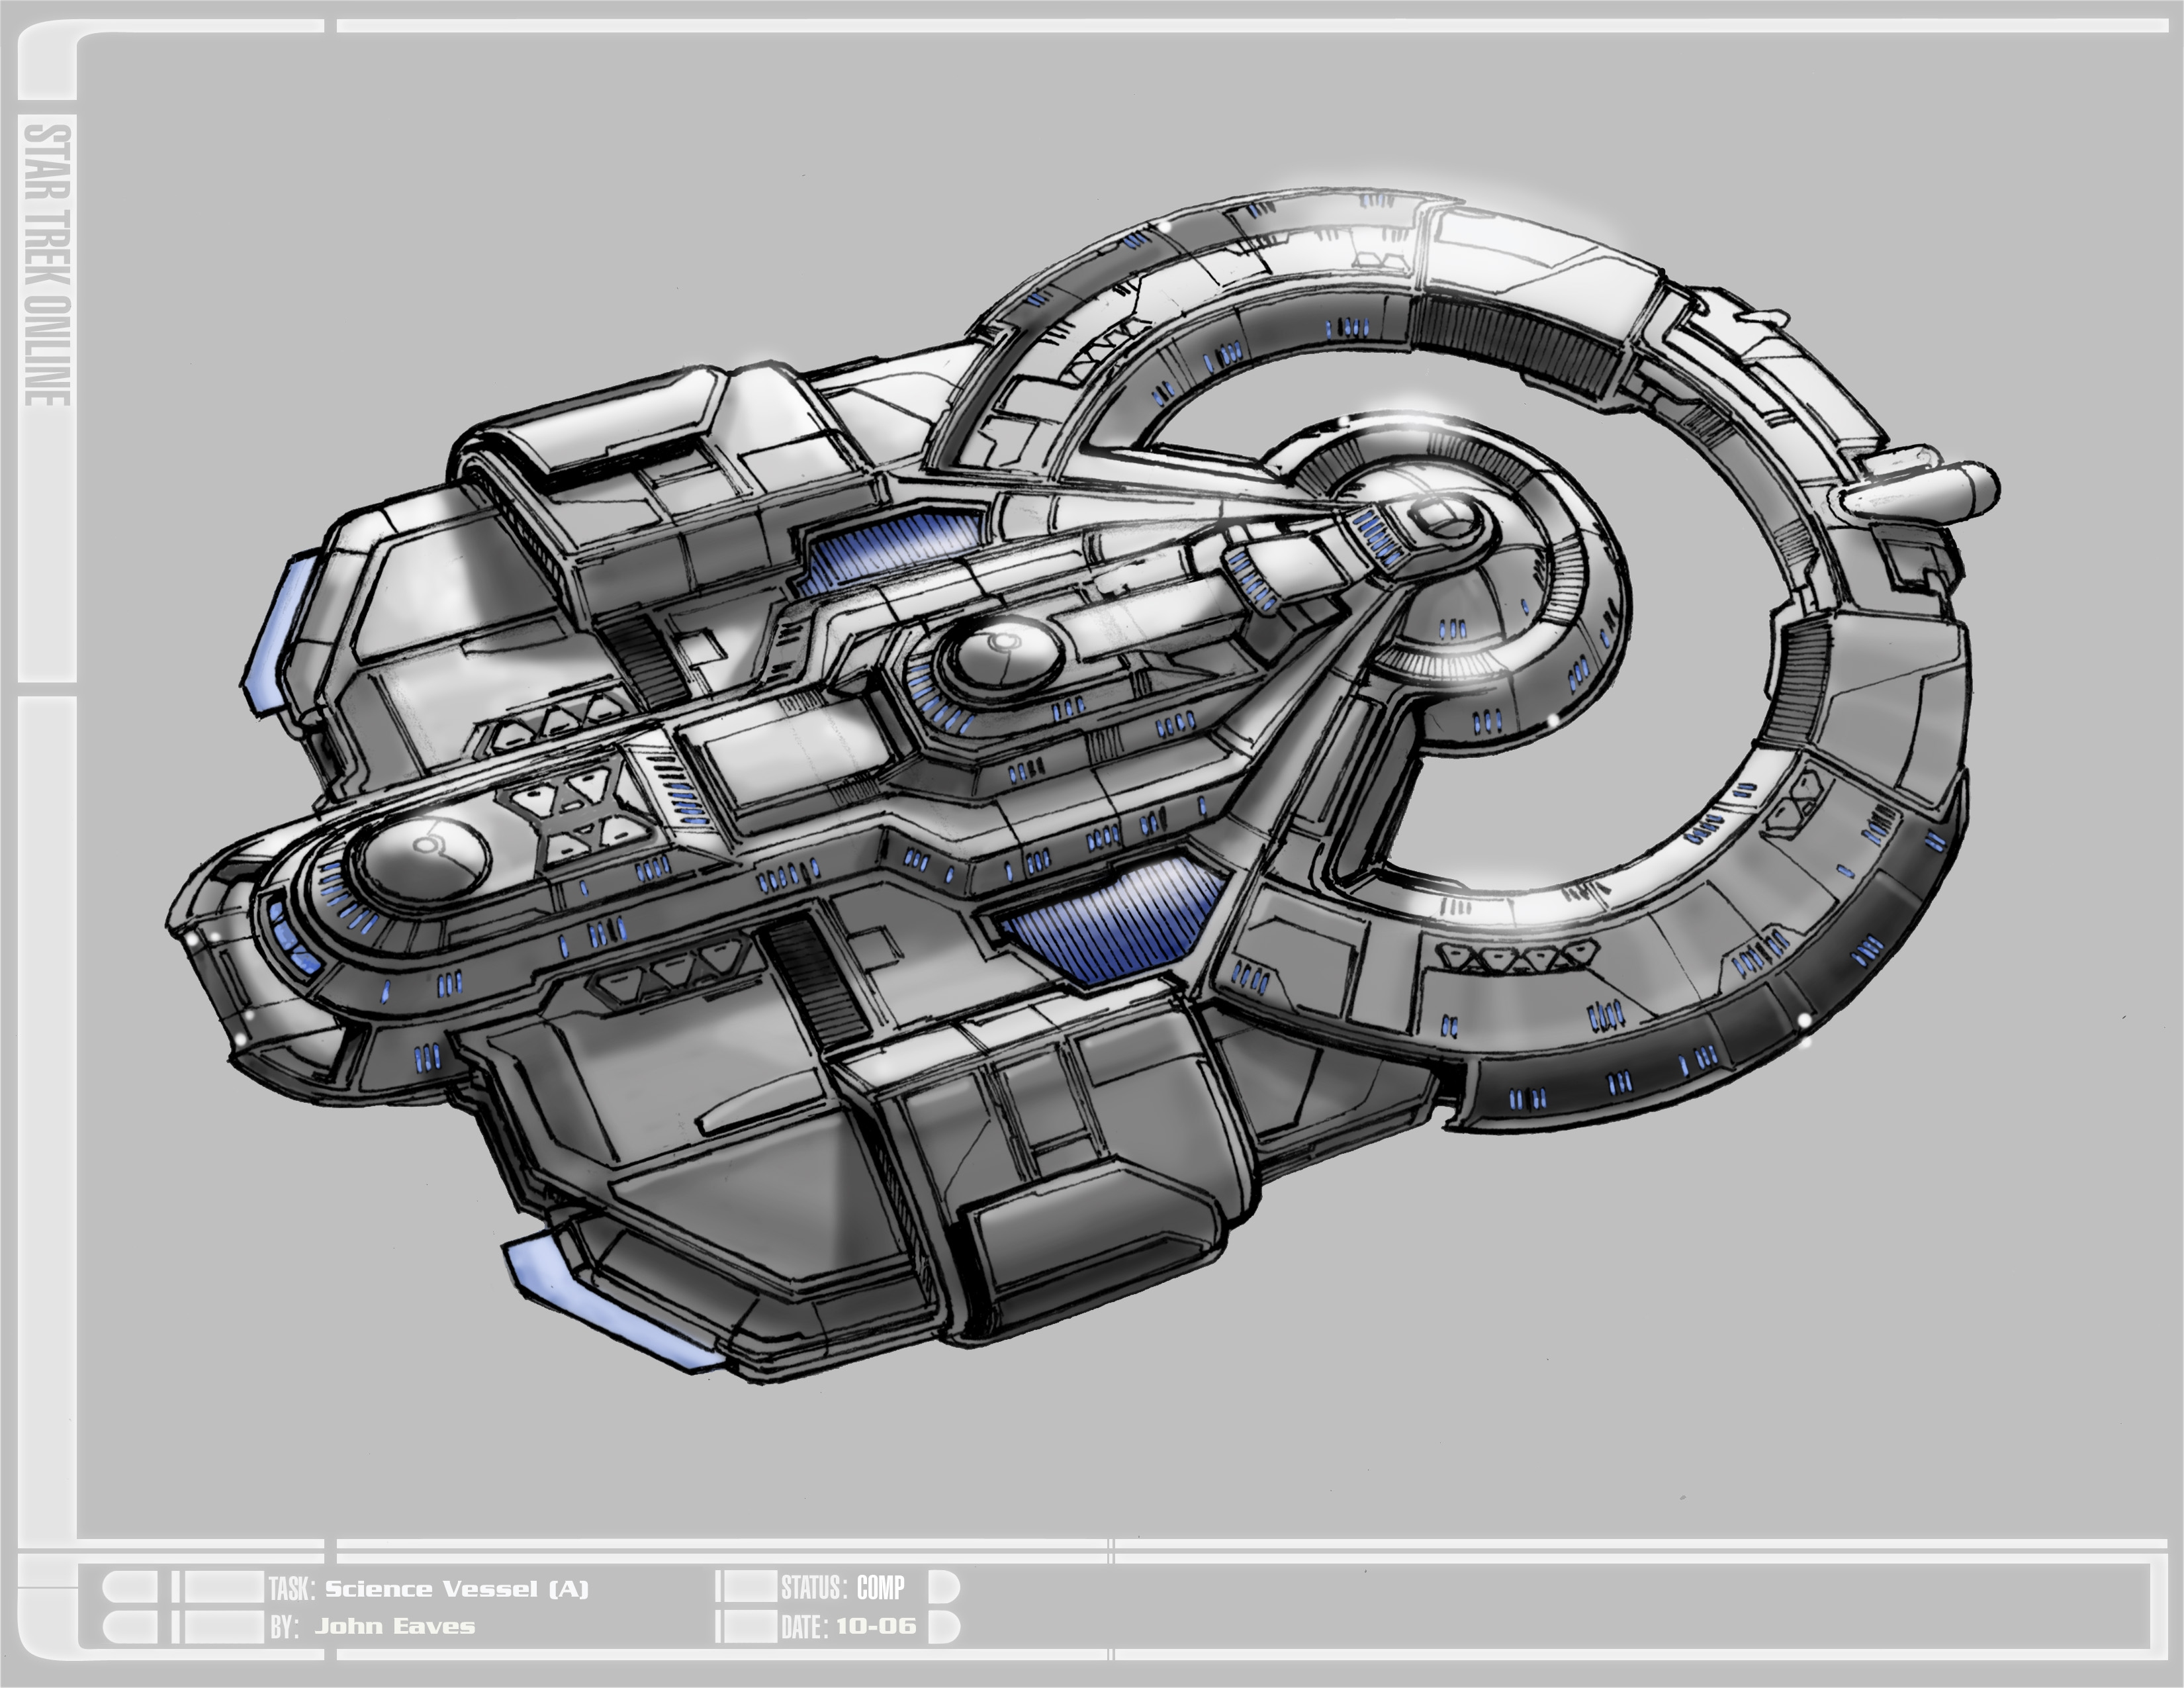 Was Looking At Ship Concept Art And Found The T6 Scryer Intel